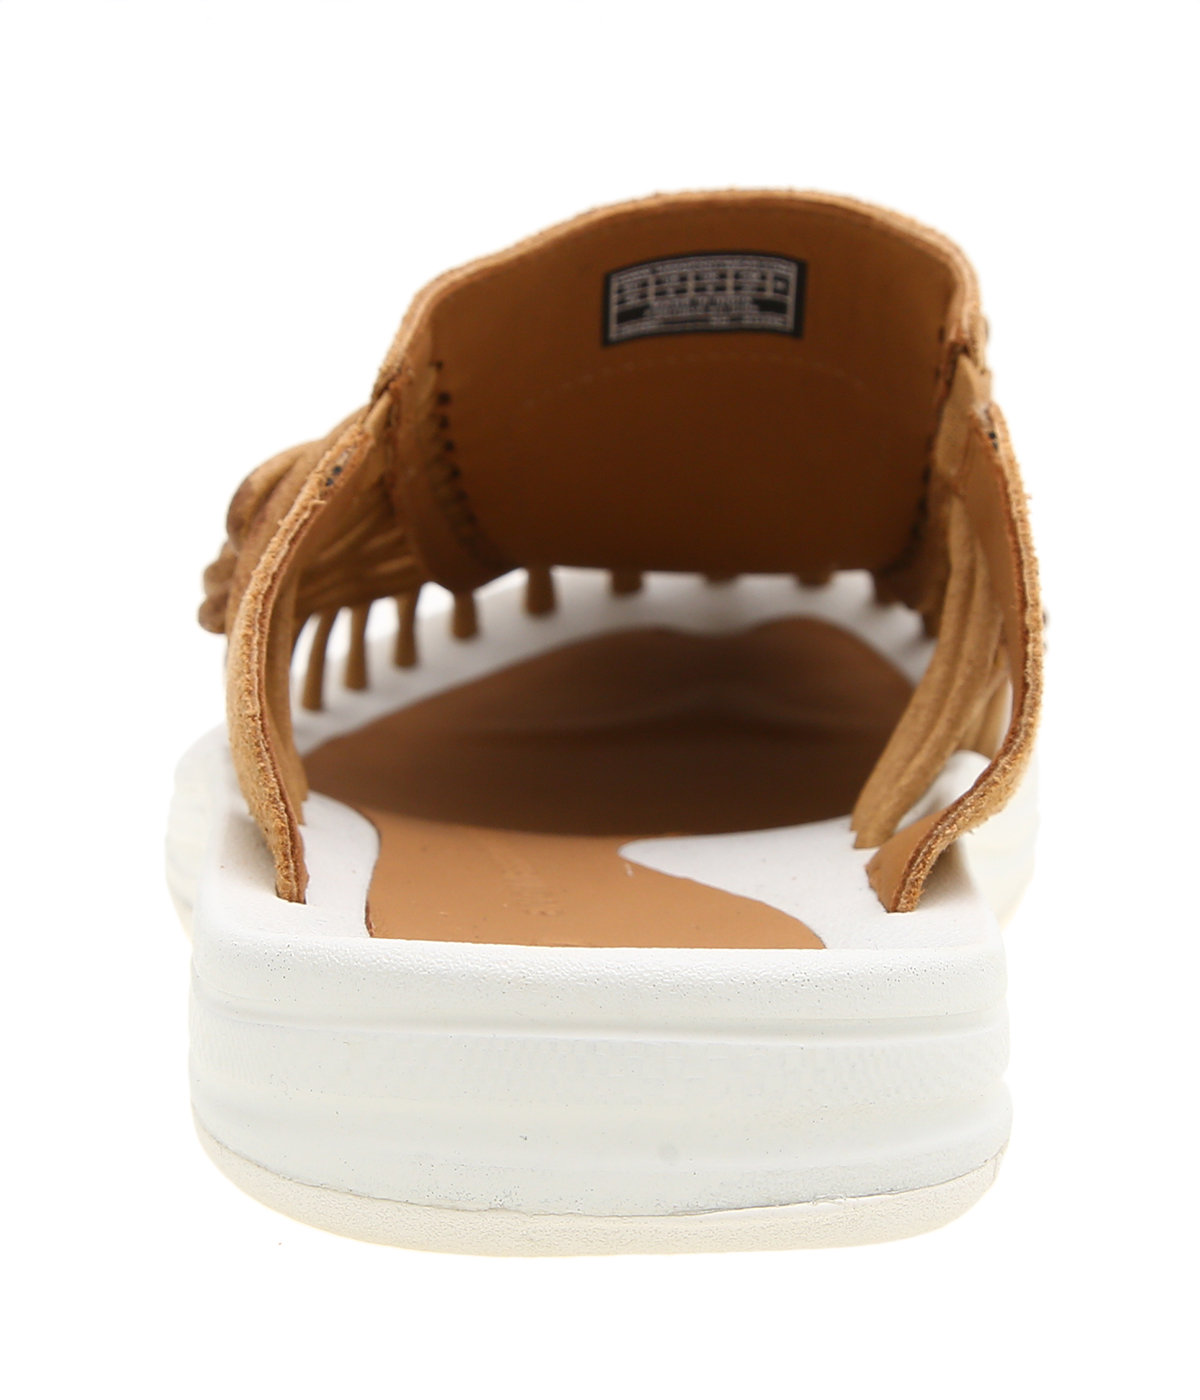 Keen x EG Uneek Premium Leather Slide